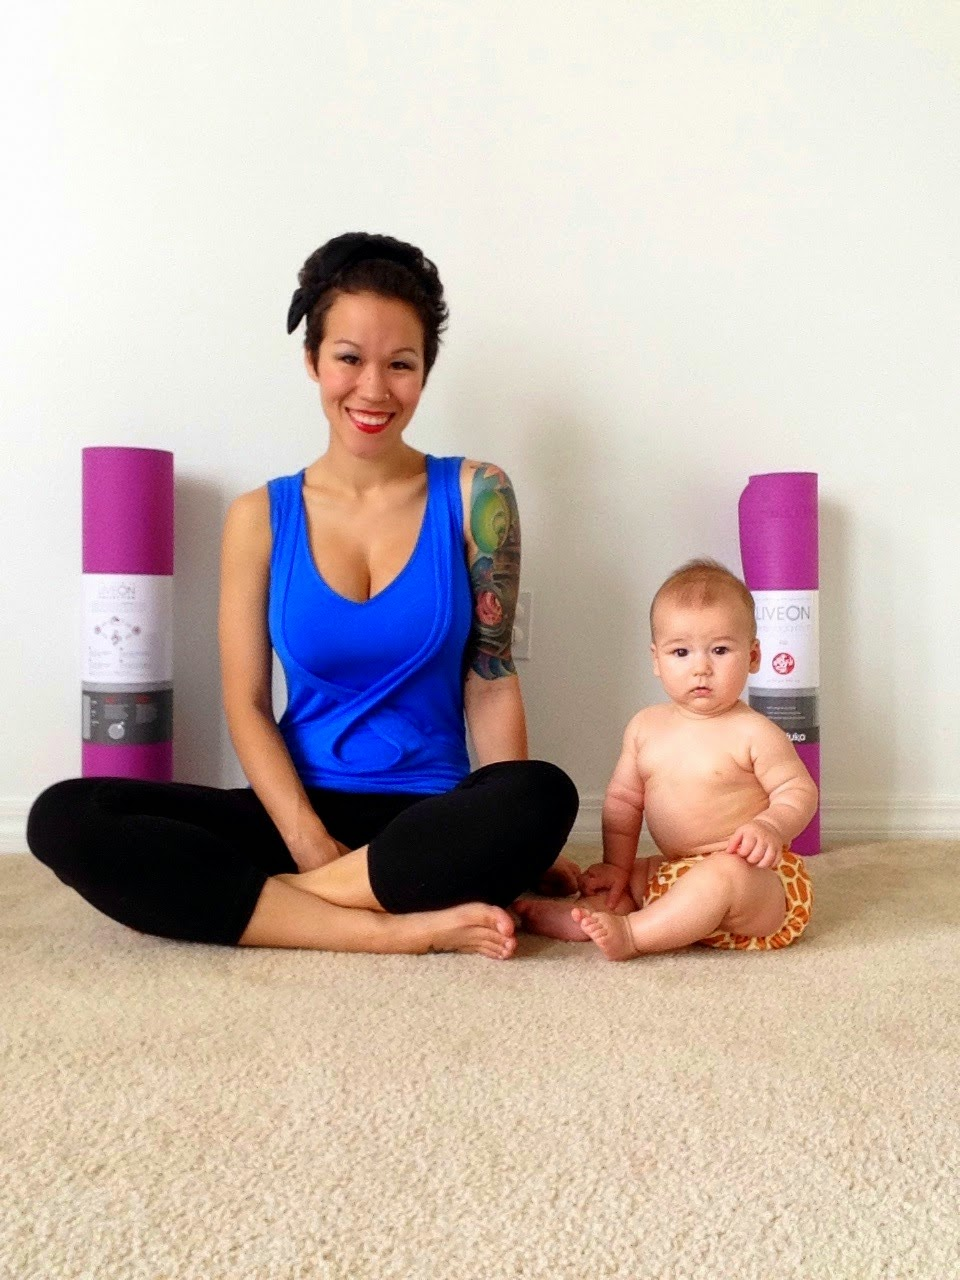 Diary Of A Fit Mommy Manduka Liveon Mommy Amp Me Yoga Mat